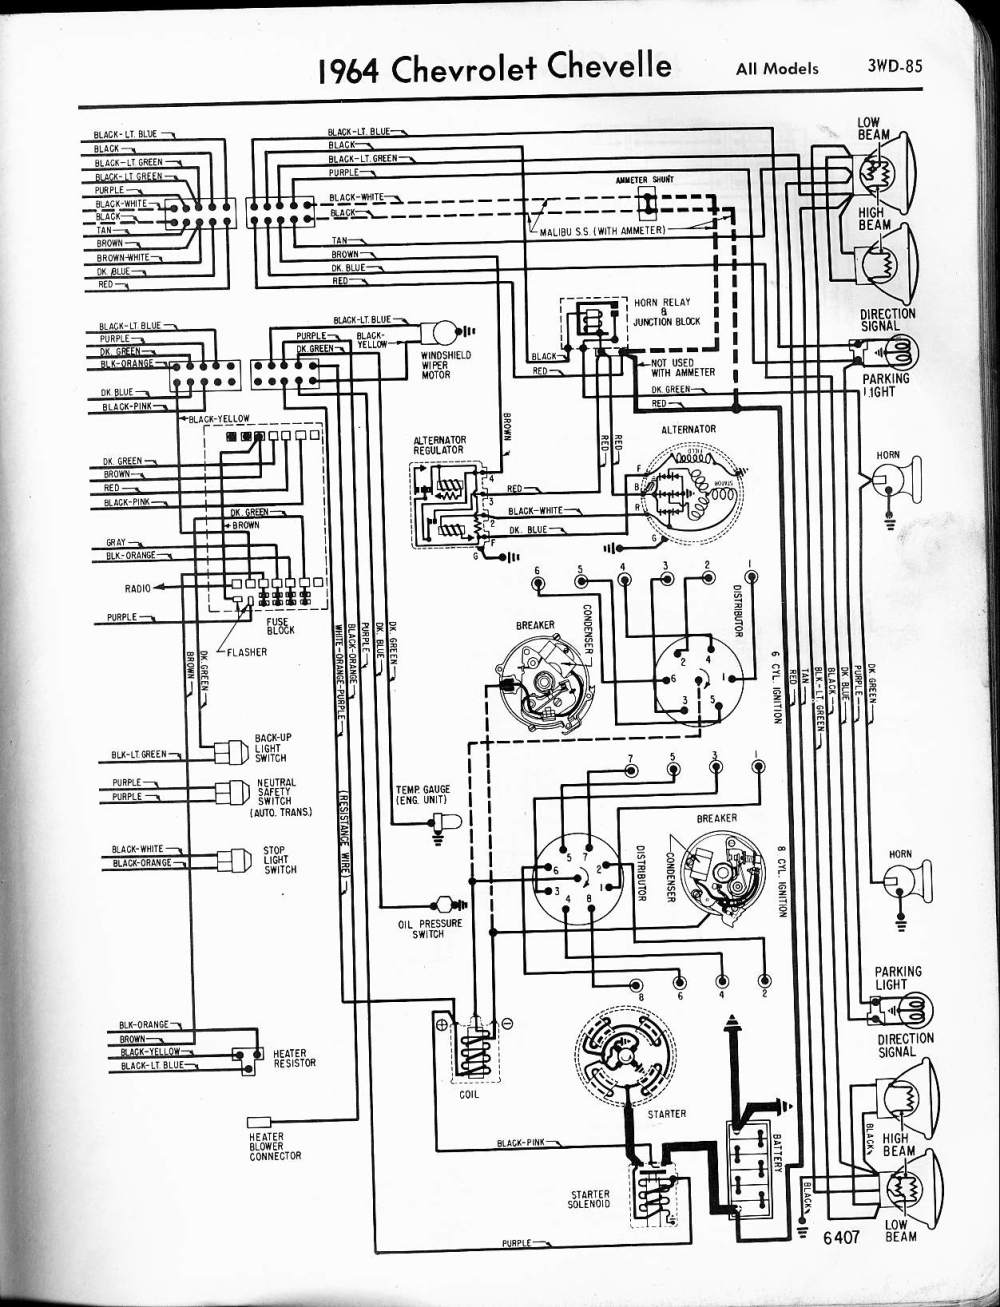 medium resolution of 65 pontiac wiring diagram wiring diagram65 gto wiring harness free download diagram schematic use wiring65 pontiac